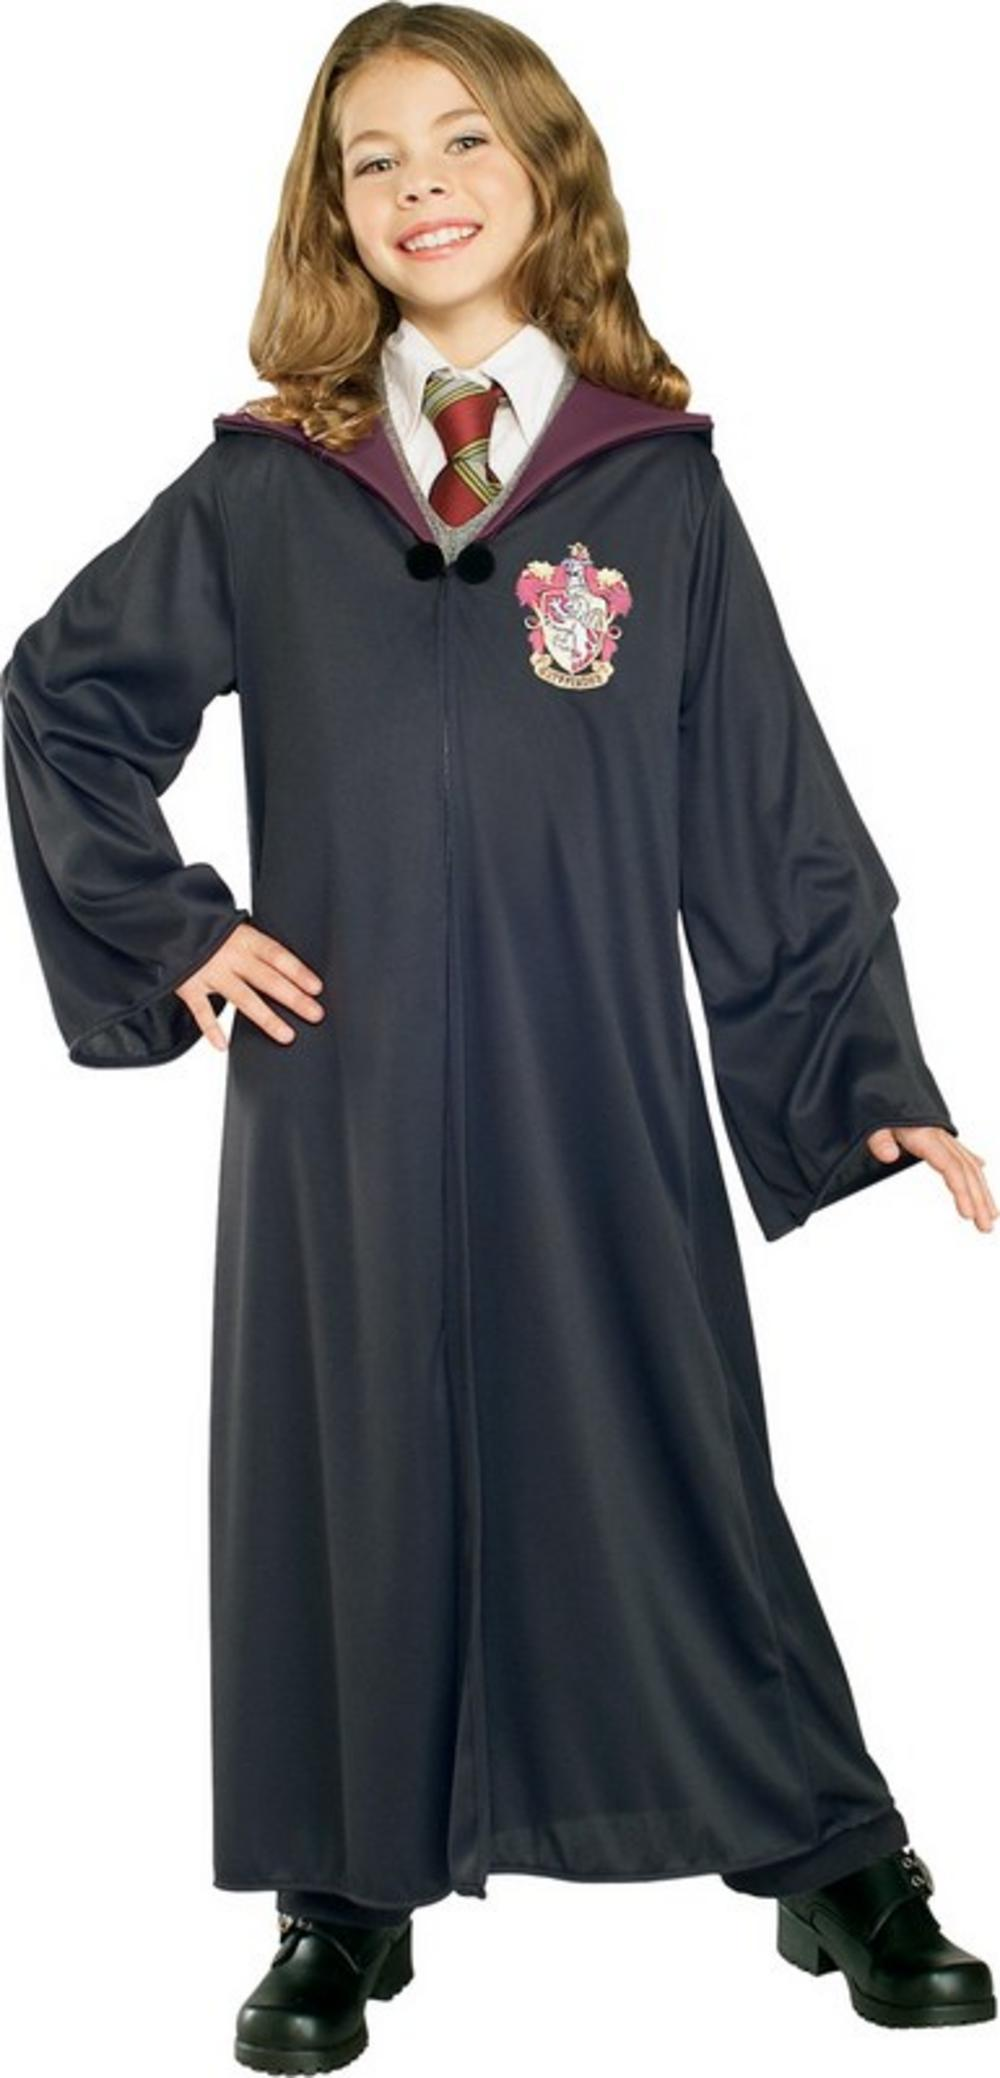 Harry Potter Hermione Gryffindor Robe Costume